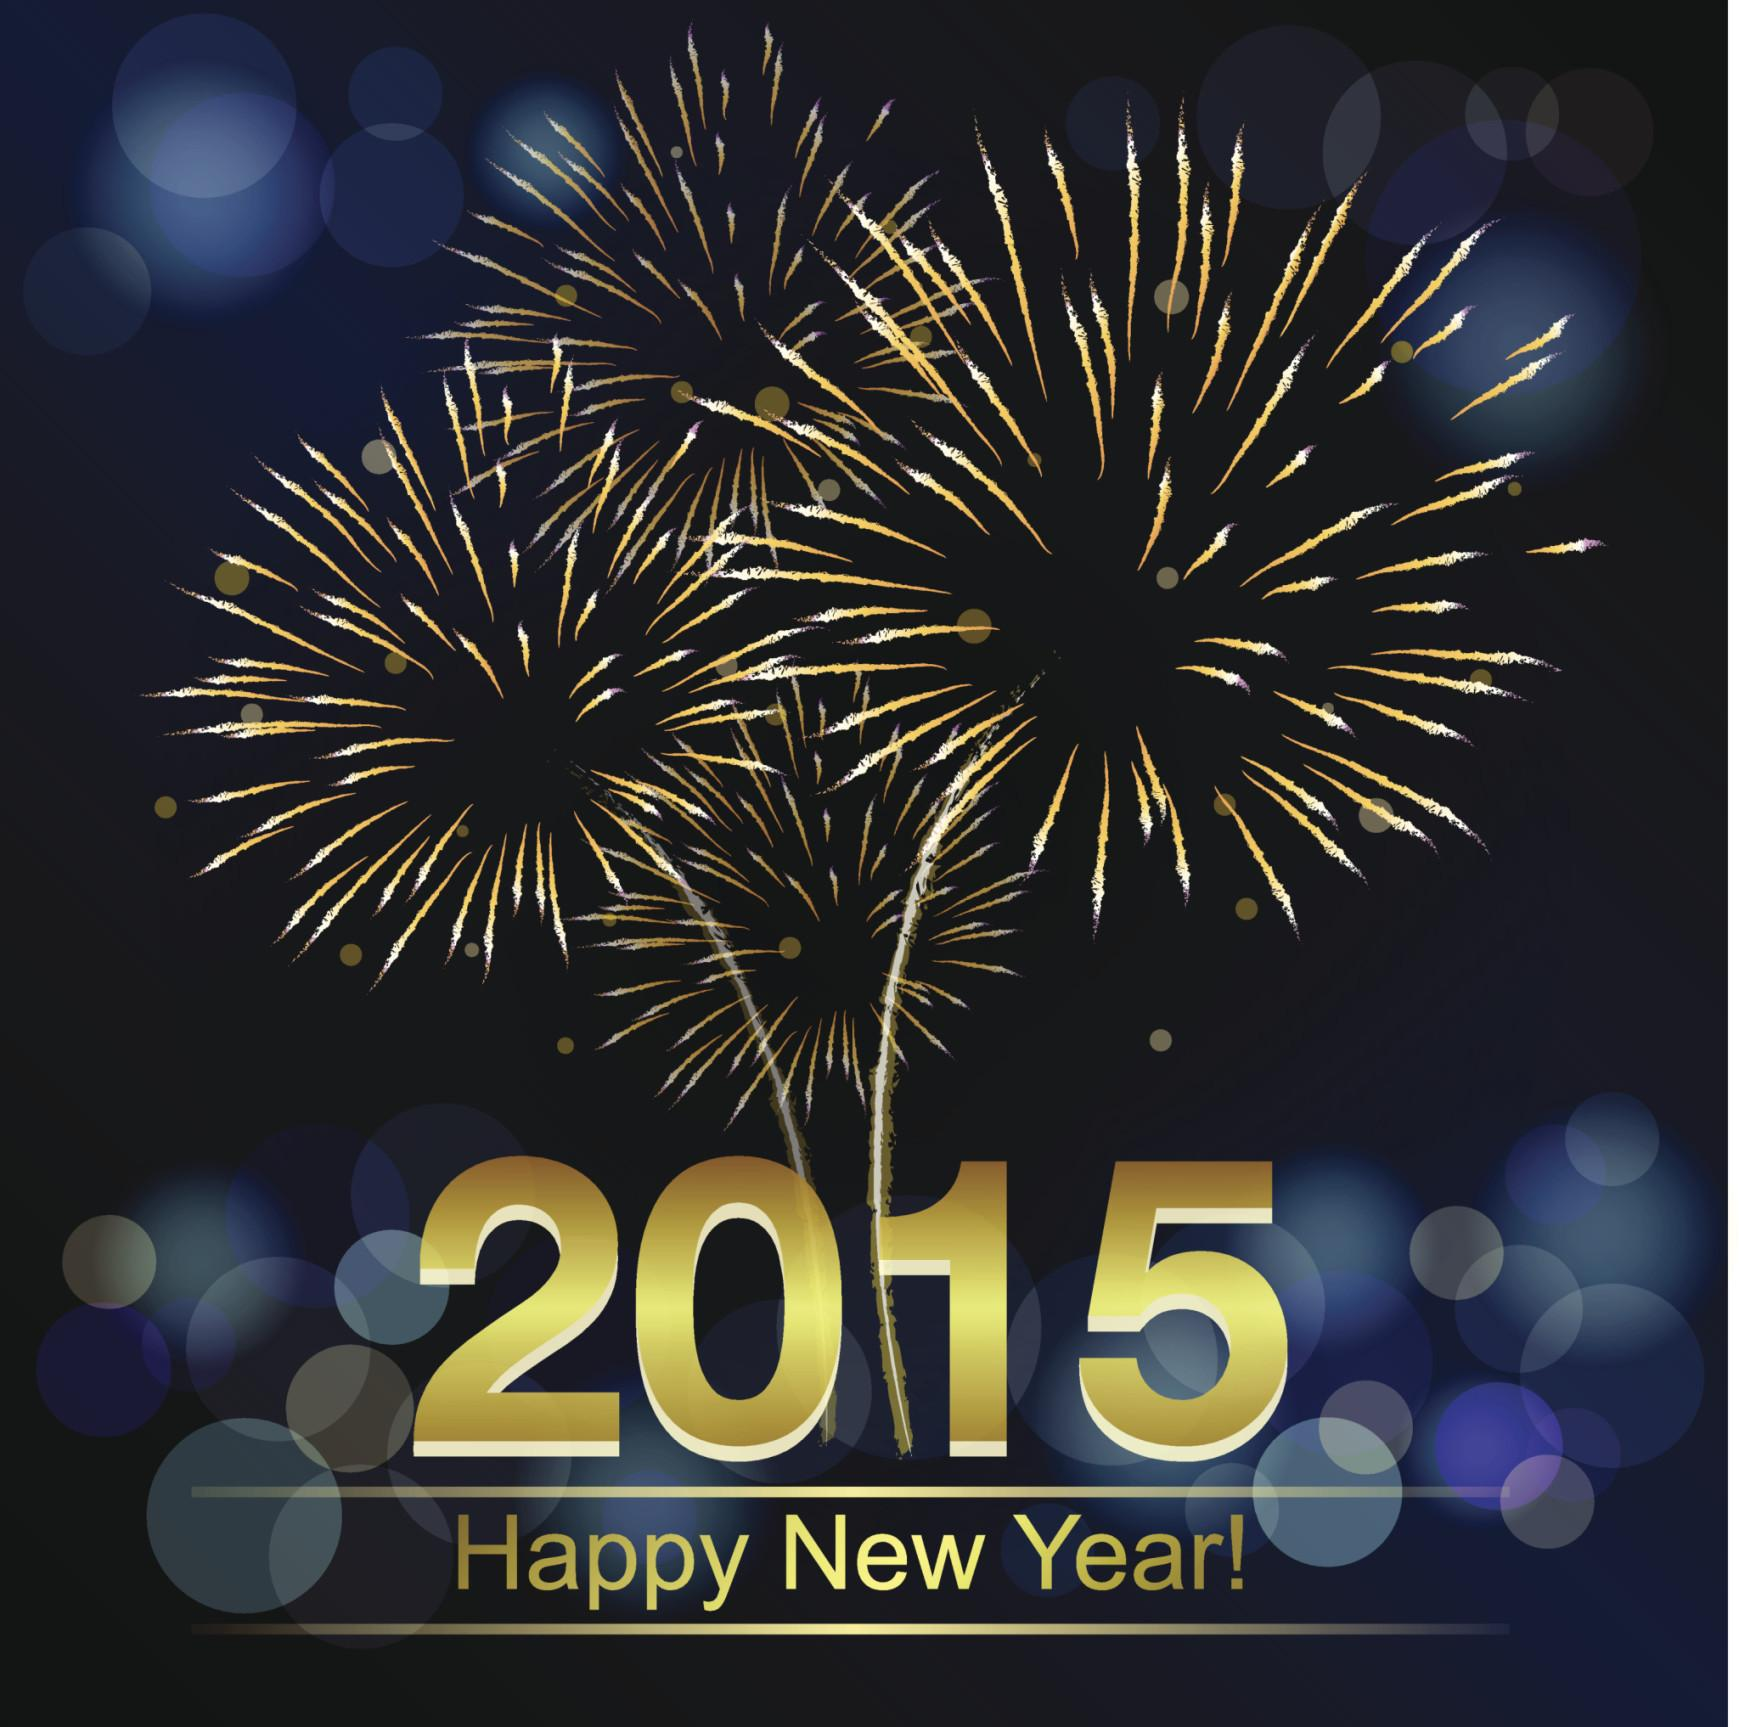 Happy New Year Our Analyzing Metals Readers